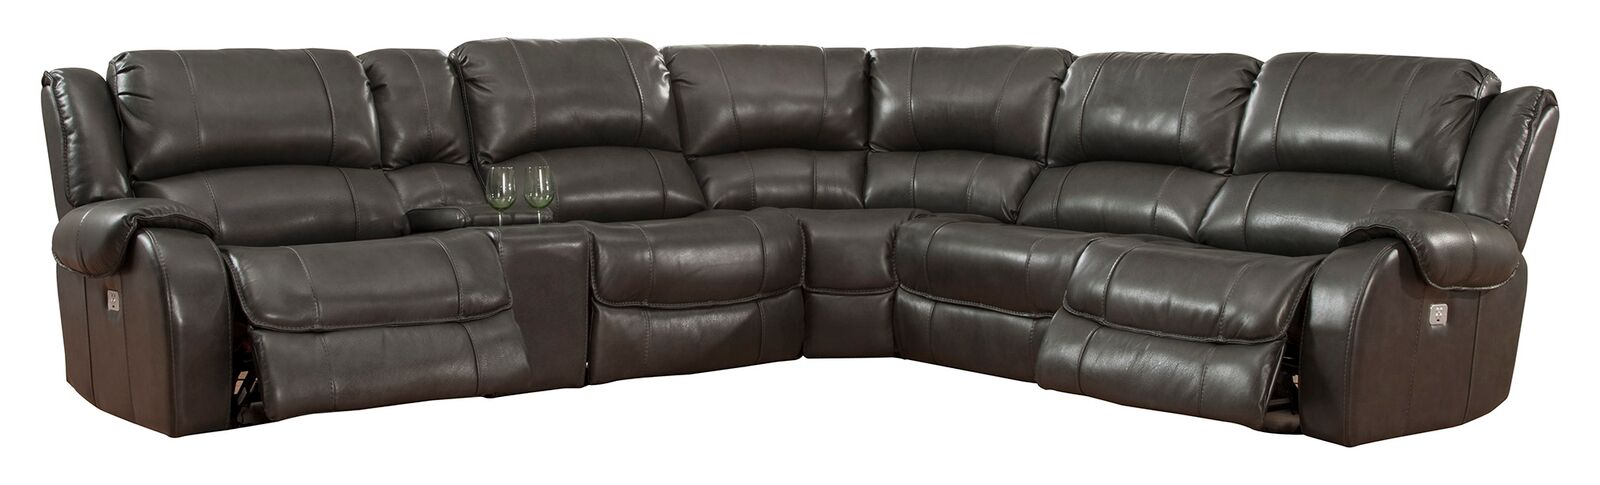 Odyssey Leather Recliner Sectional Image